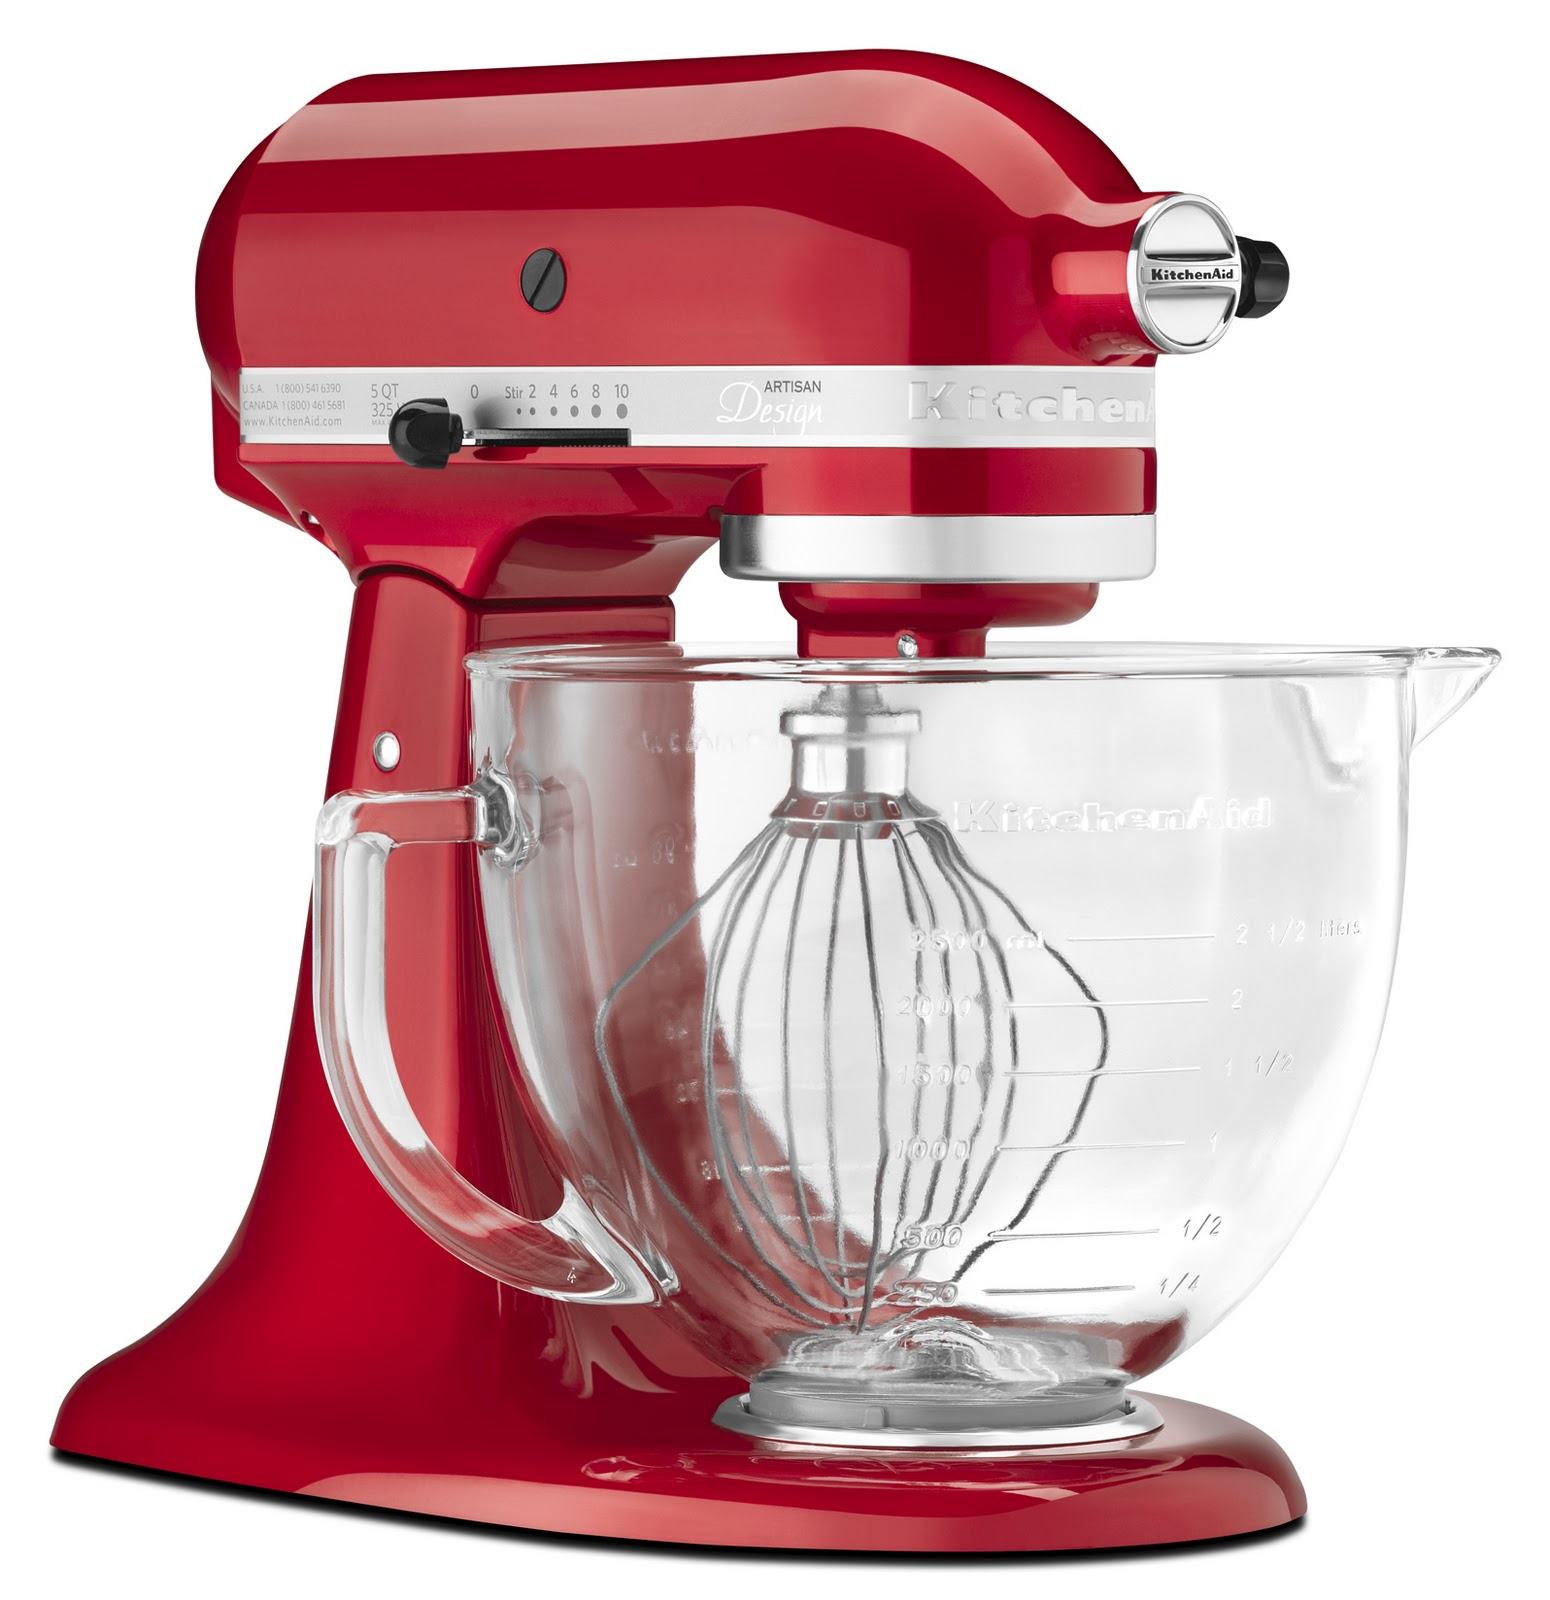 Kitchenaid hand mixer colors | Kitchen ideas